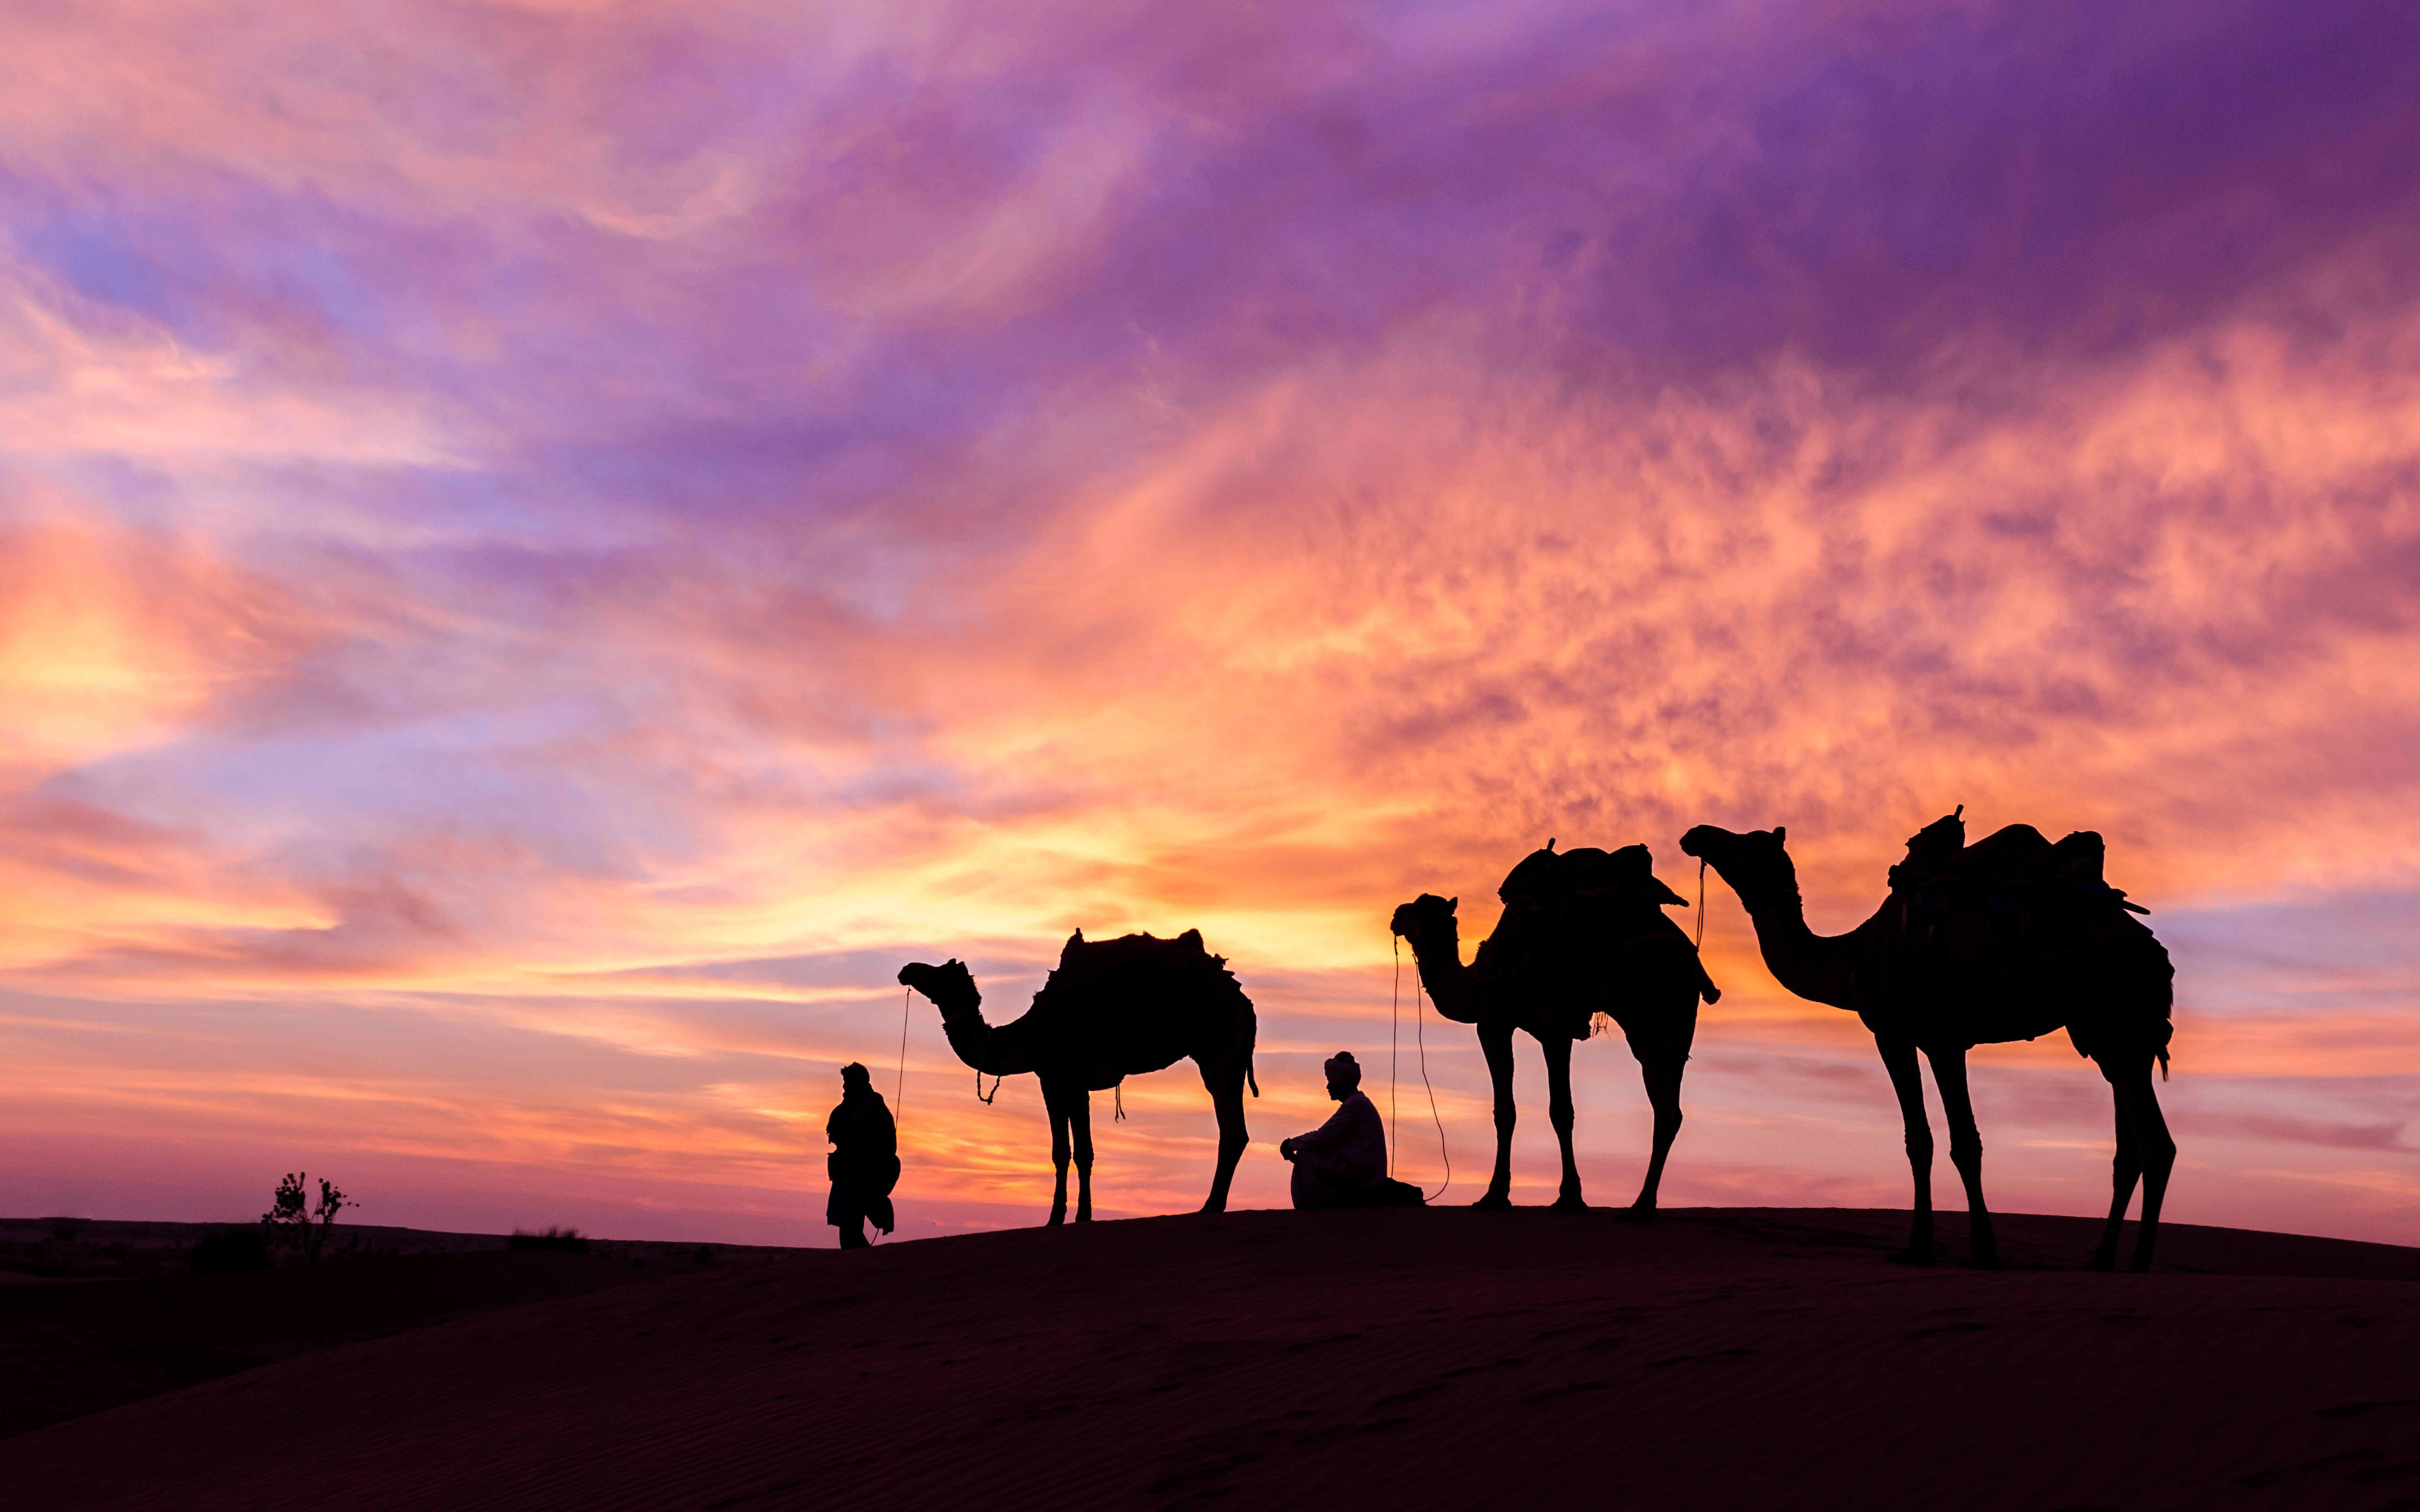 5 Day Dubai Itinerary - Desert Safari - 2